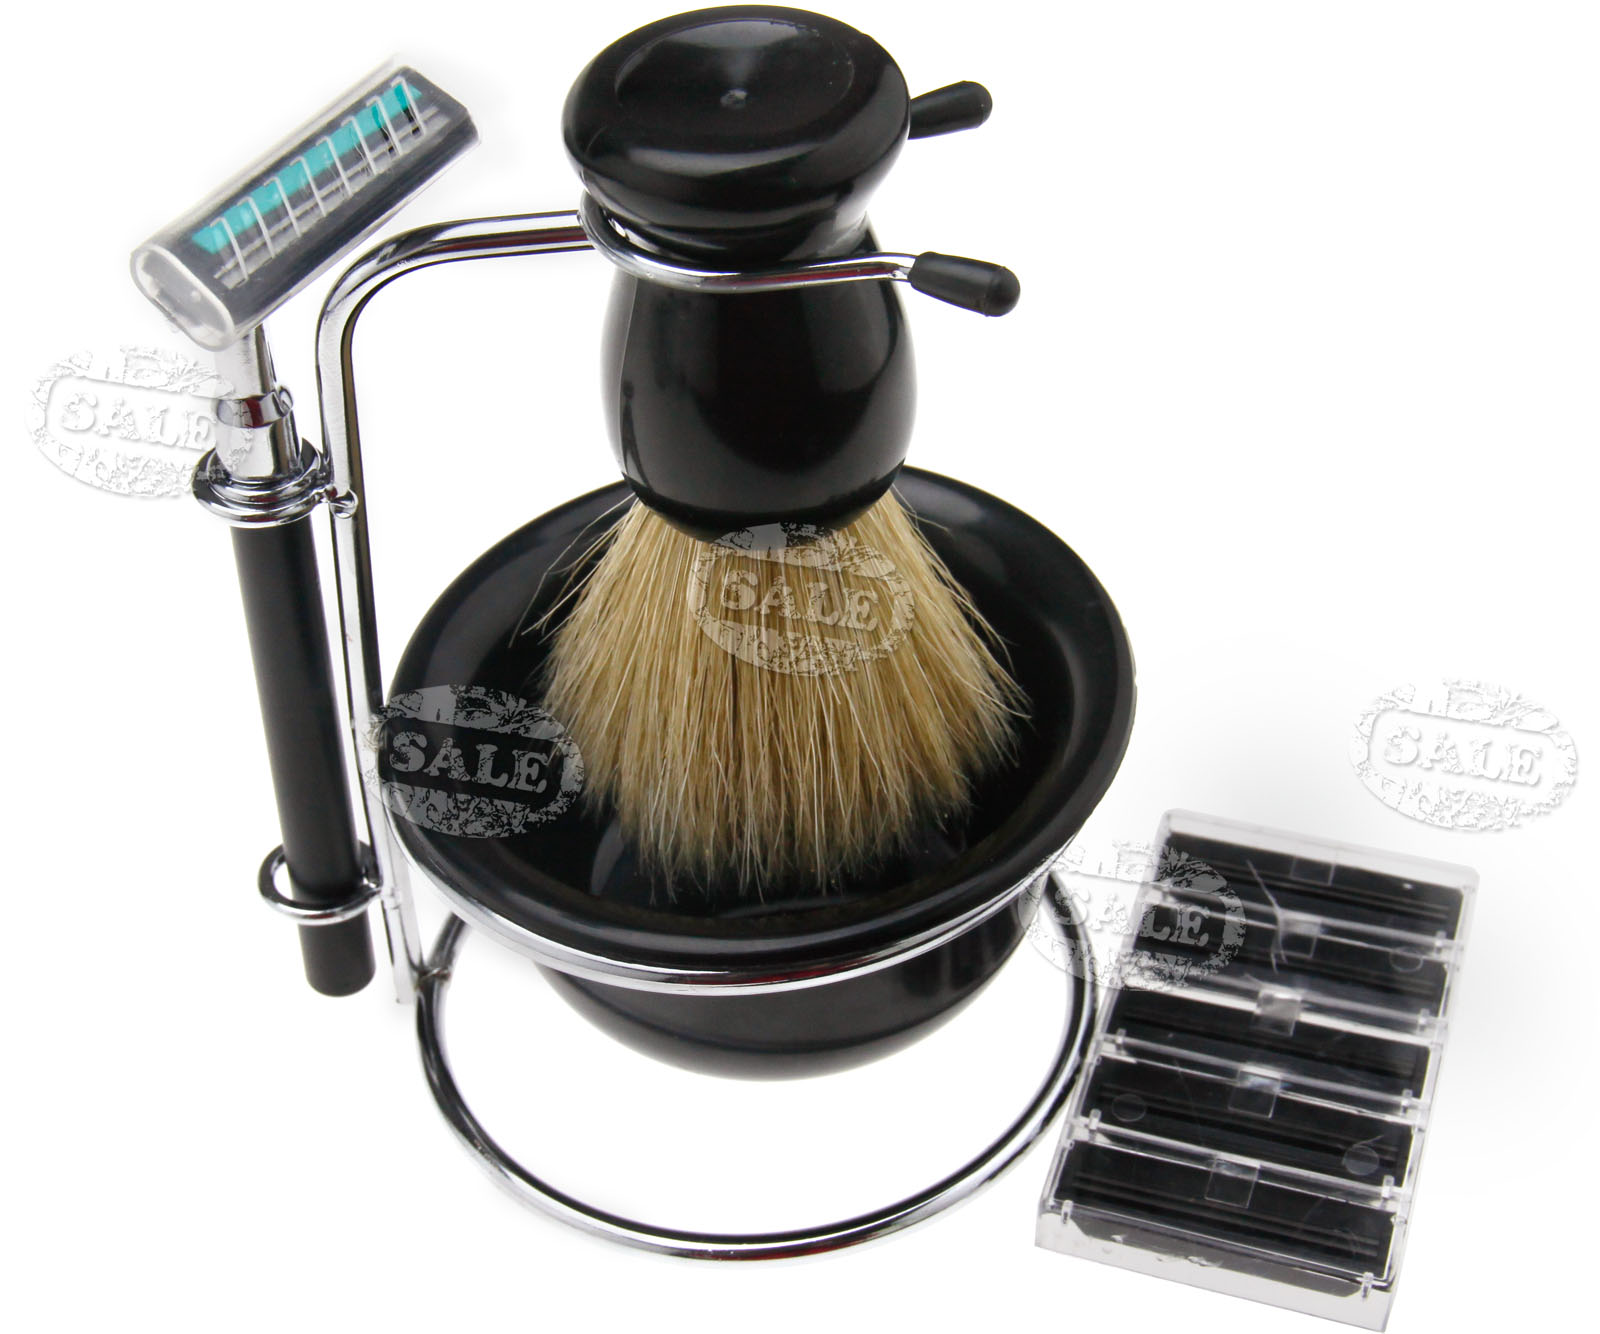 beard grooming kit hong kong the emirates high street remington vacuum beard the emirates high. Black Bedroom Furniture Sets. Home Design Ideas